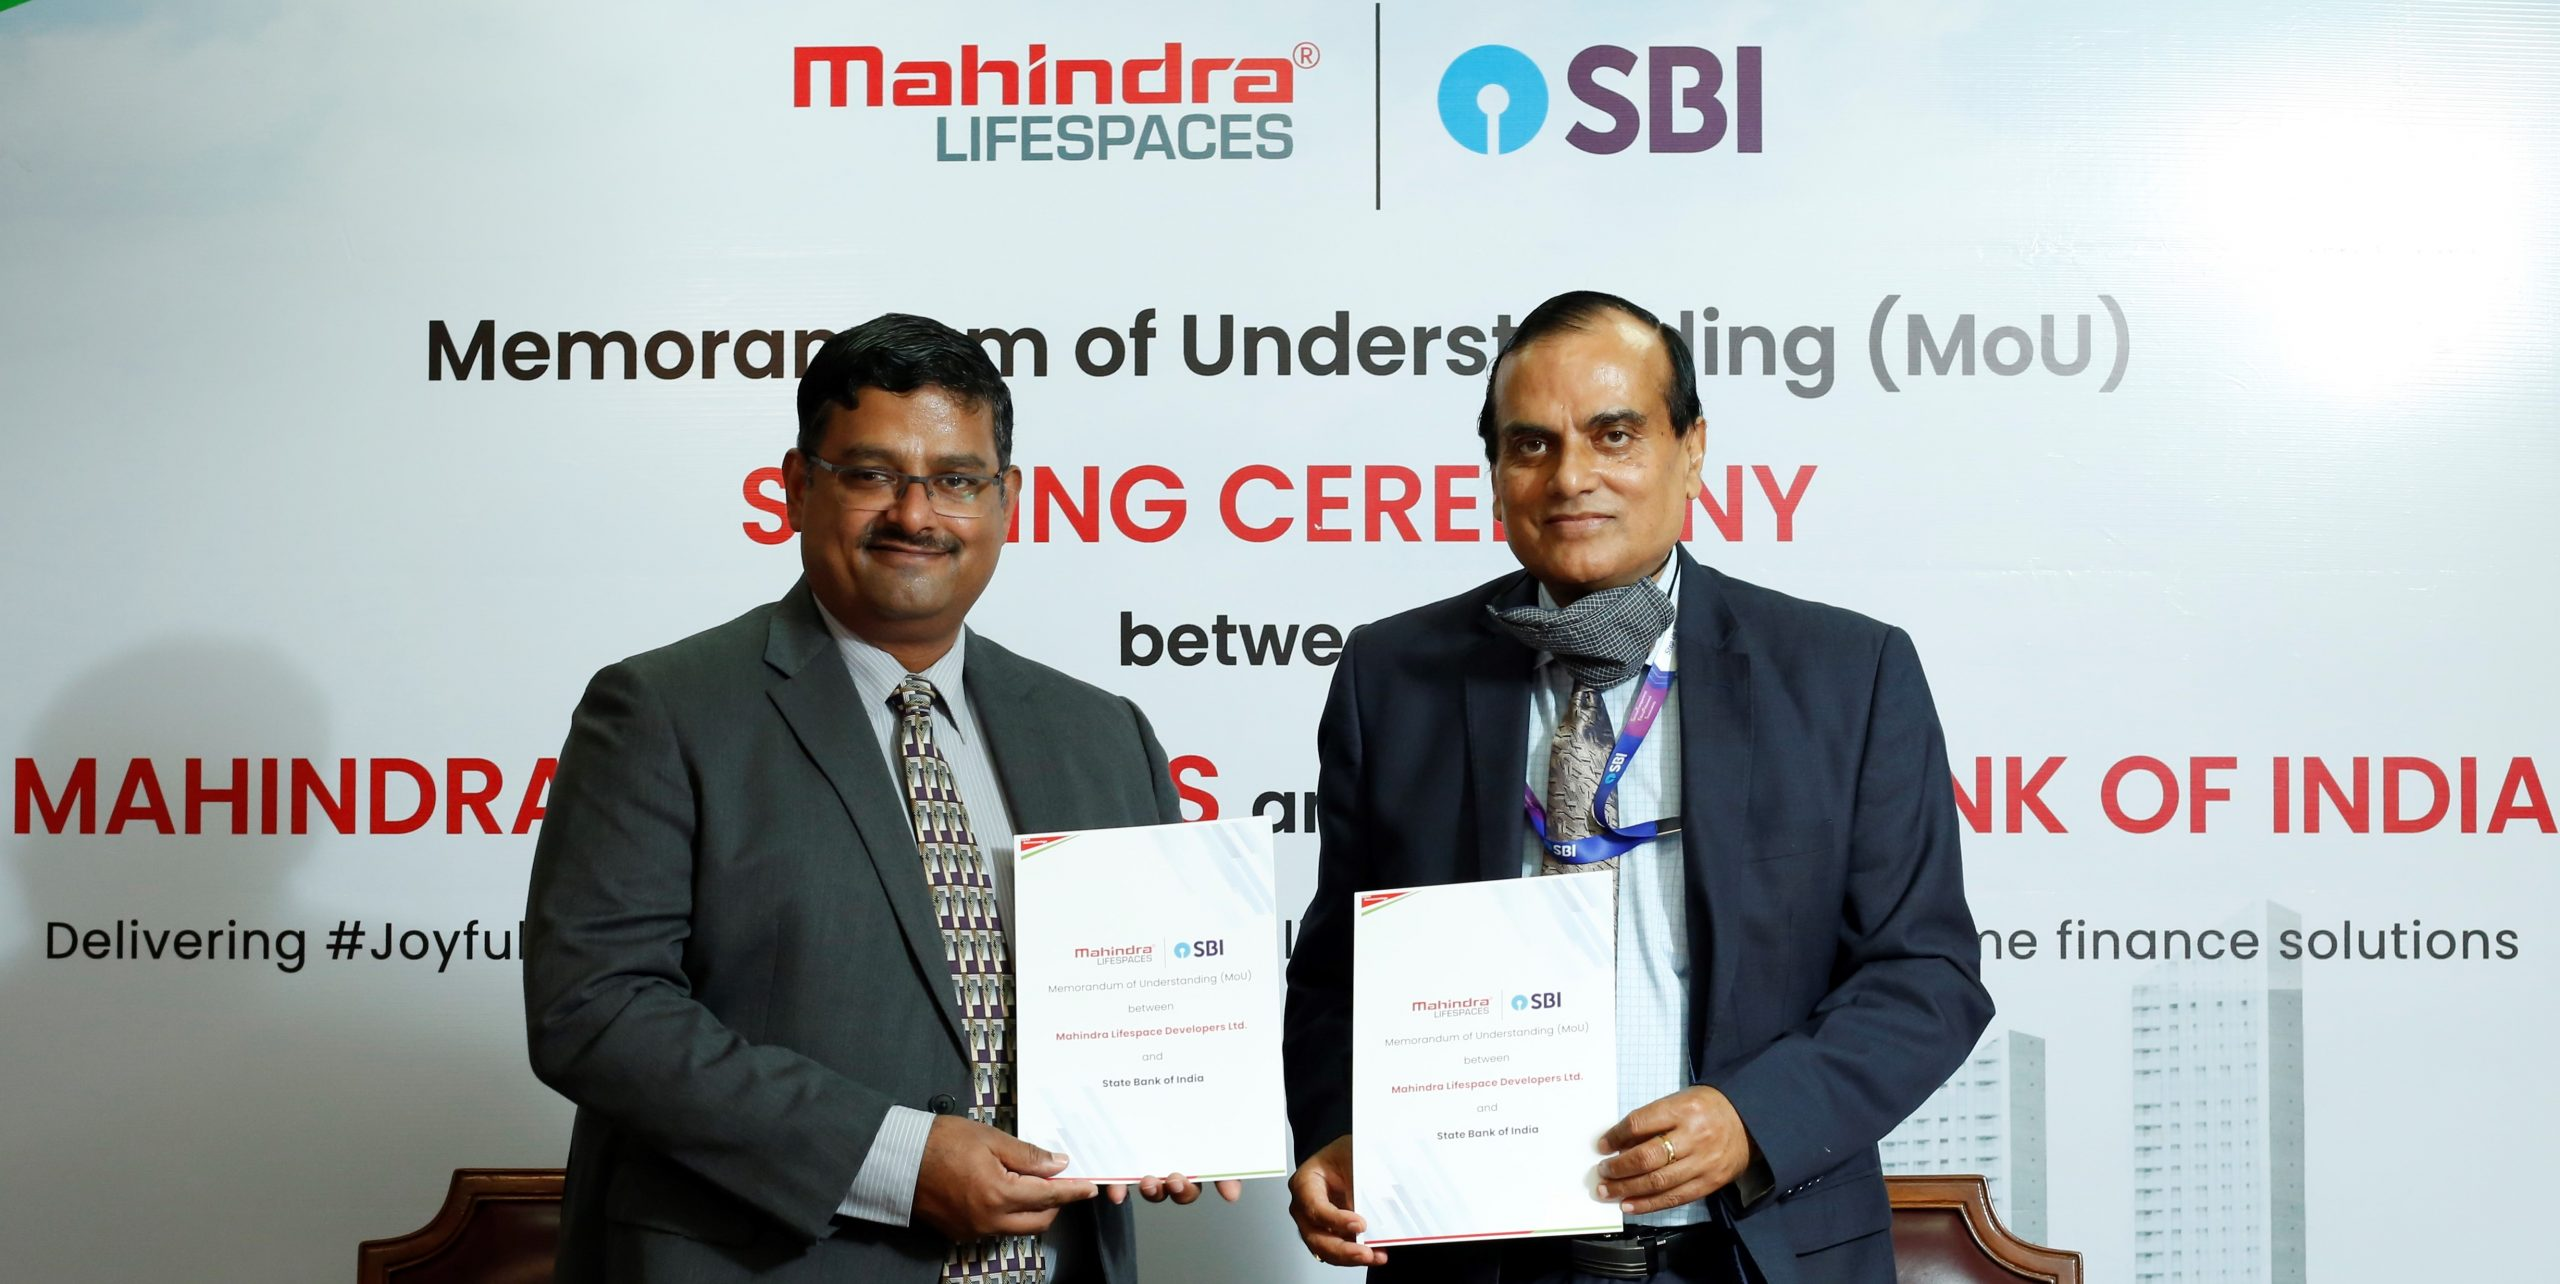 Mahindra Lifespaces signs MoU with State Bank of India